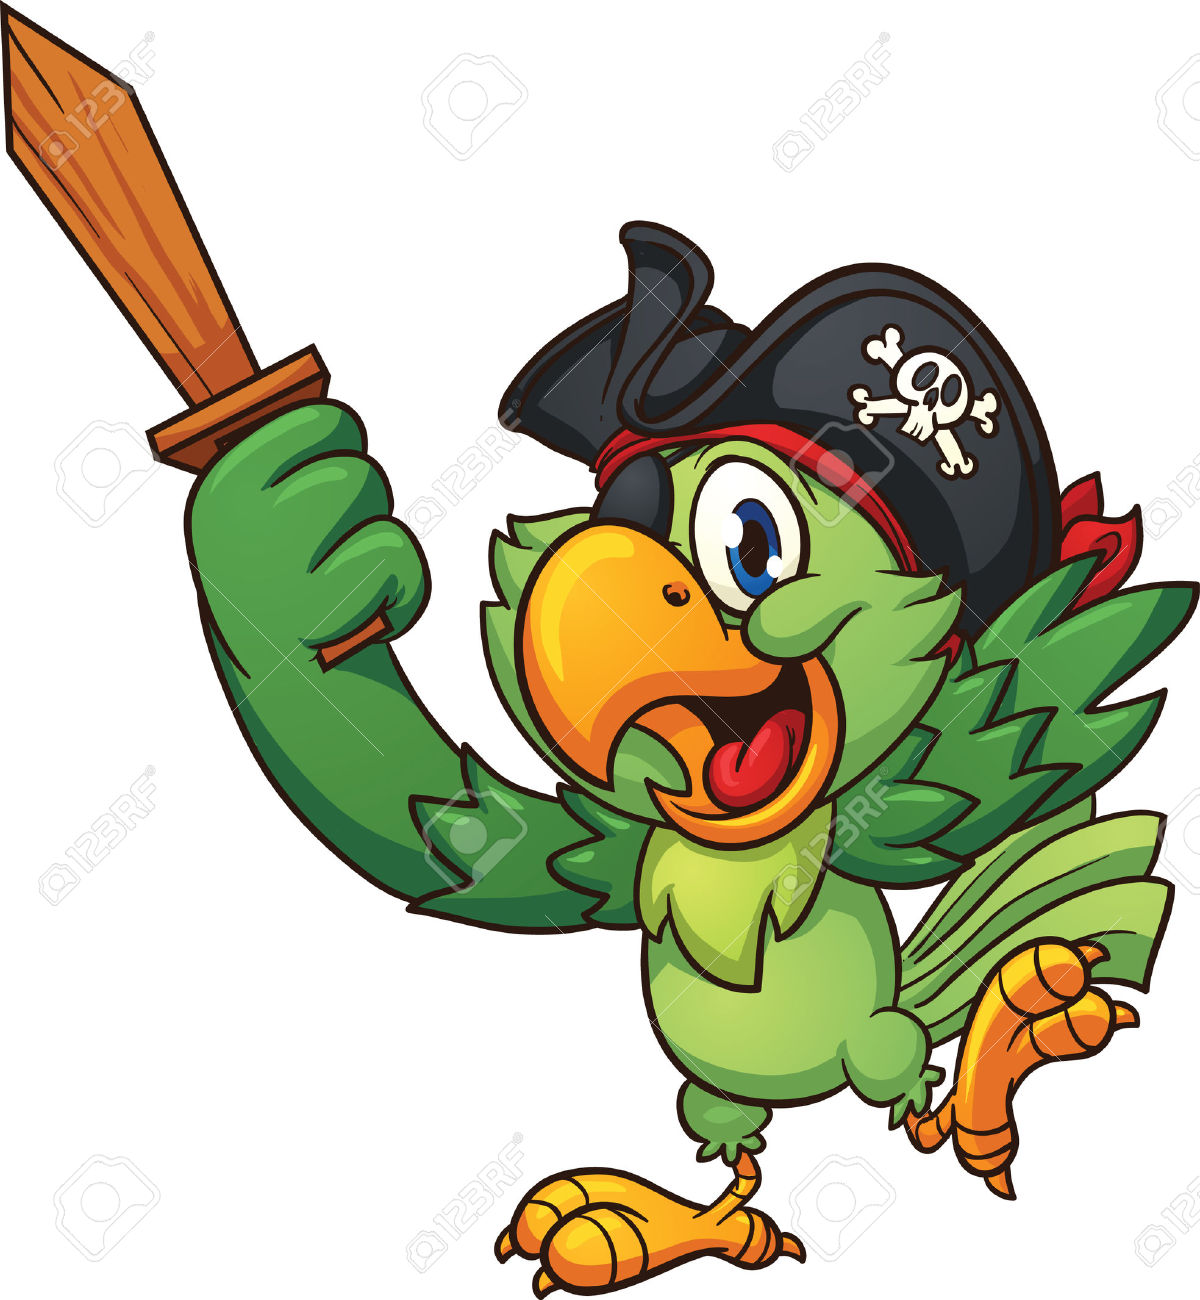 Pirate Parrot Holding A Wooden Sword. Vector Clip Art Illustration.